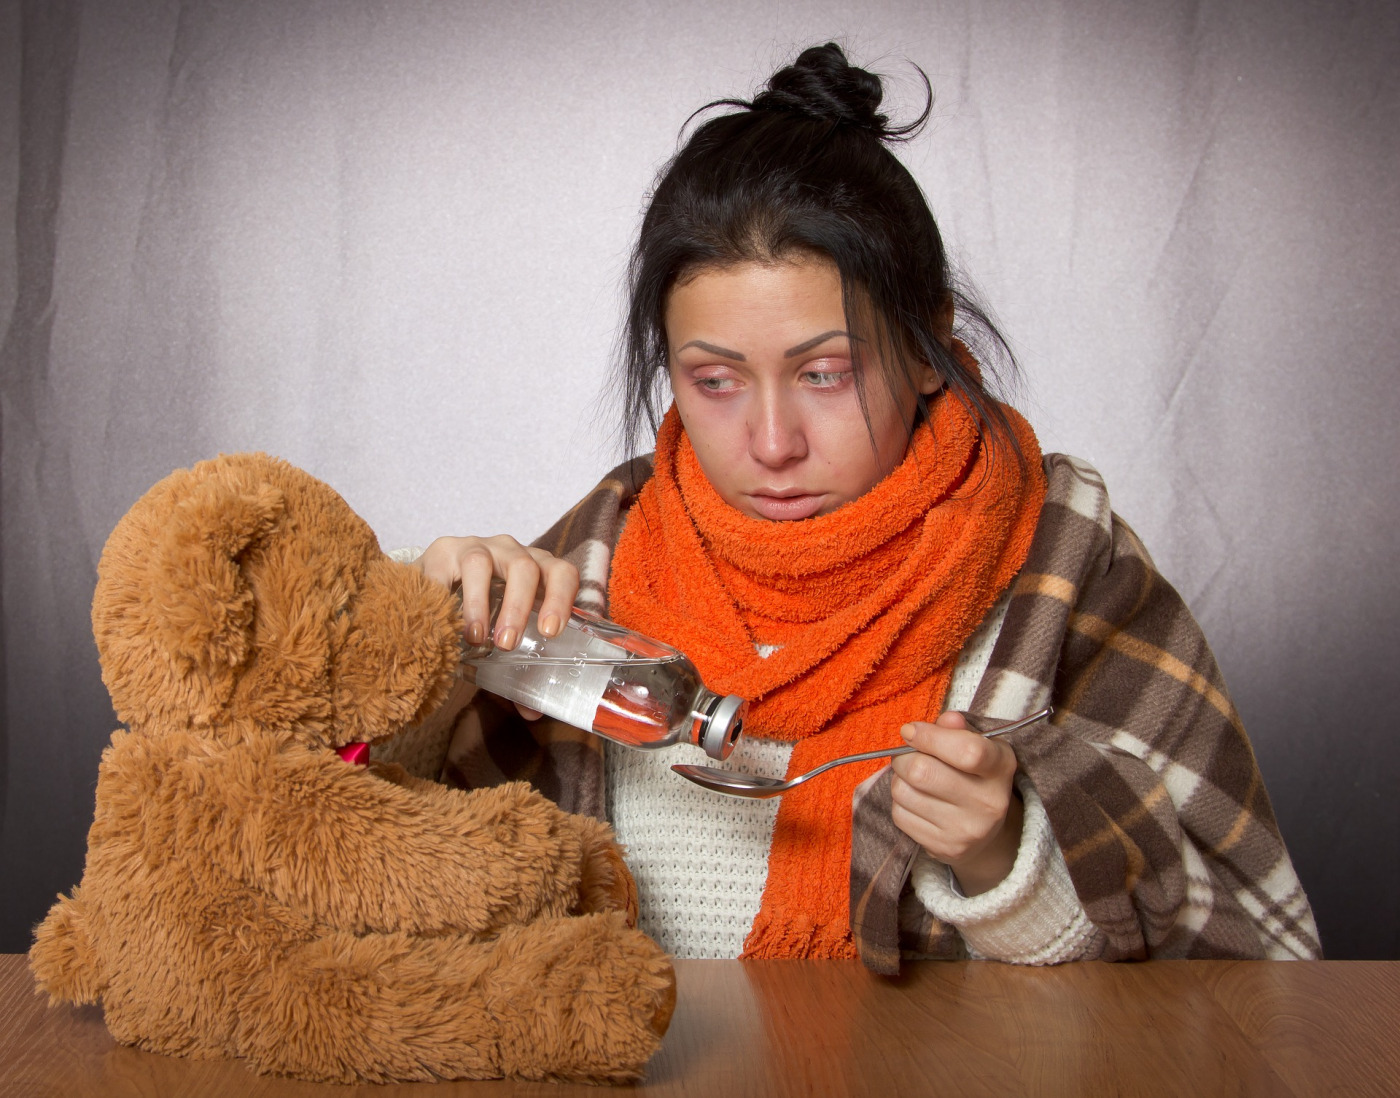 8 Tips For Staying Healthy During Flu Season